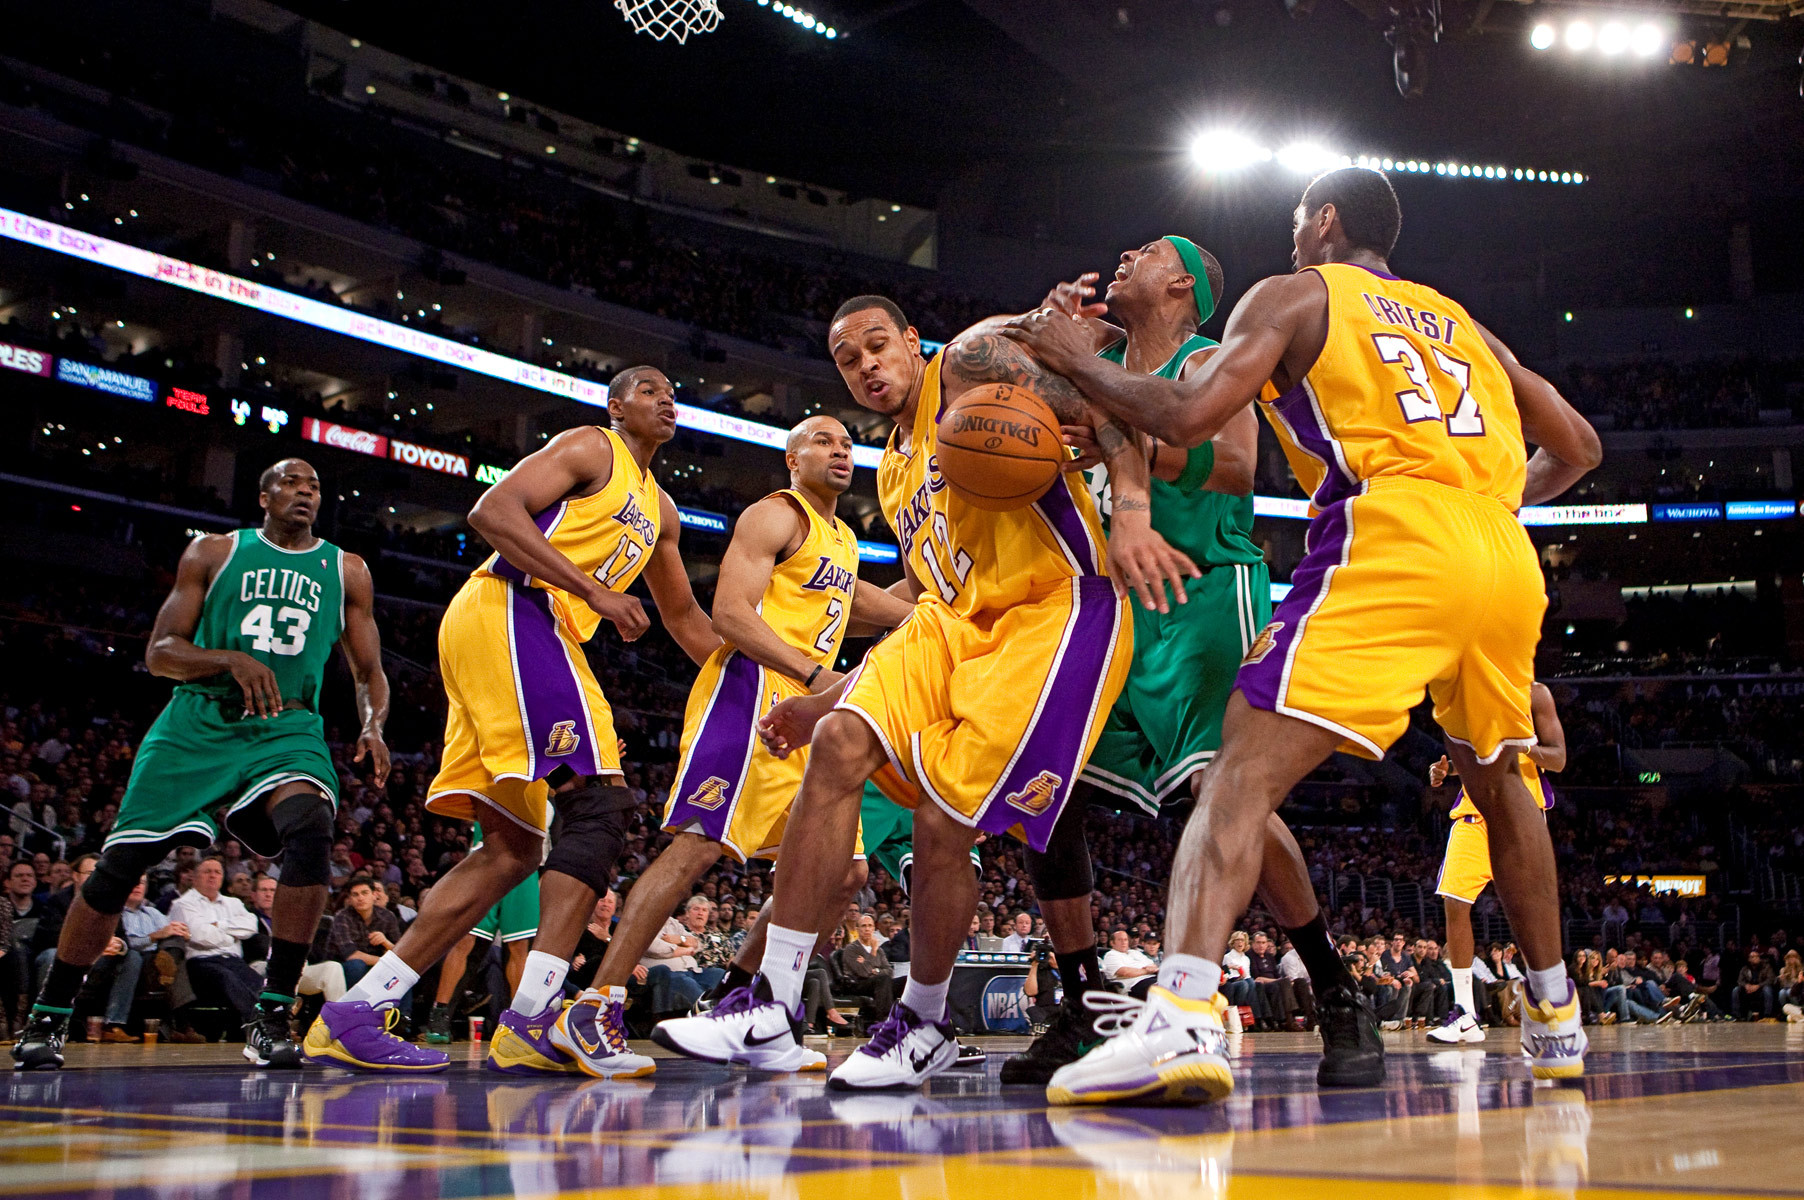 Pro Basketball Betting at America's Bookie – Lakers Try to Avoid Being Humiliated Again vs. Clippers